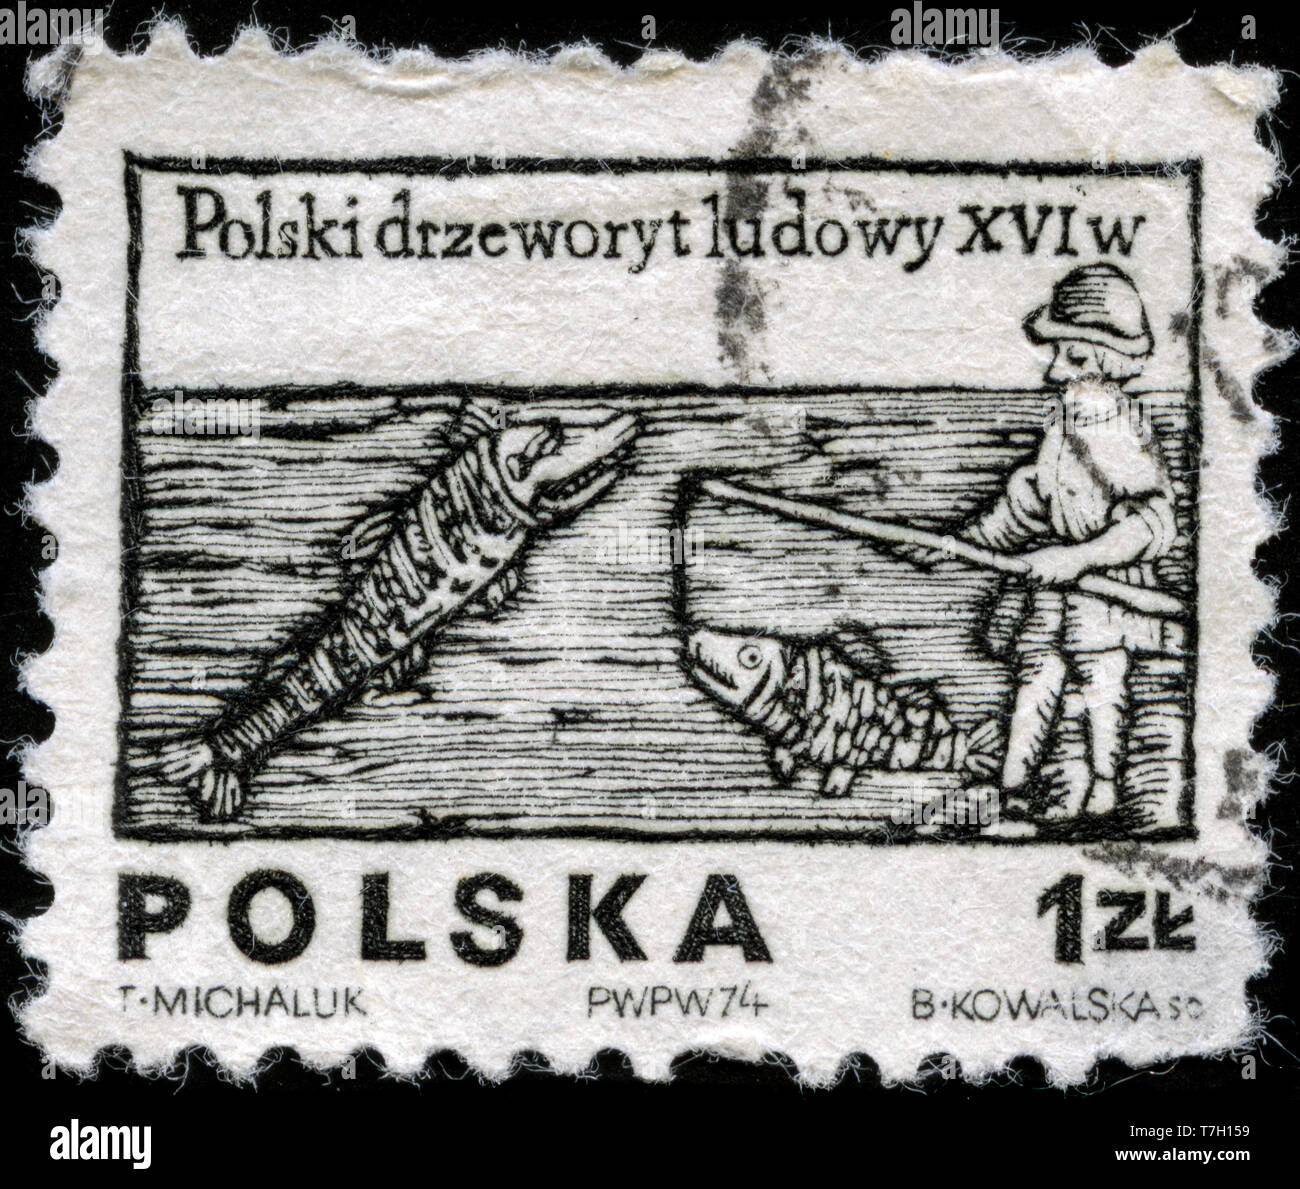 Stamp Designs Stock Photos & Stamp Designs Stock Images - Alamy